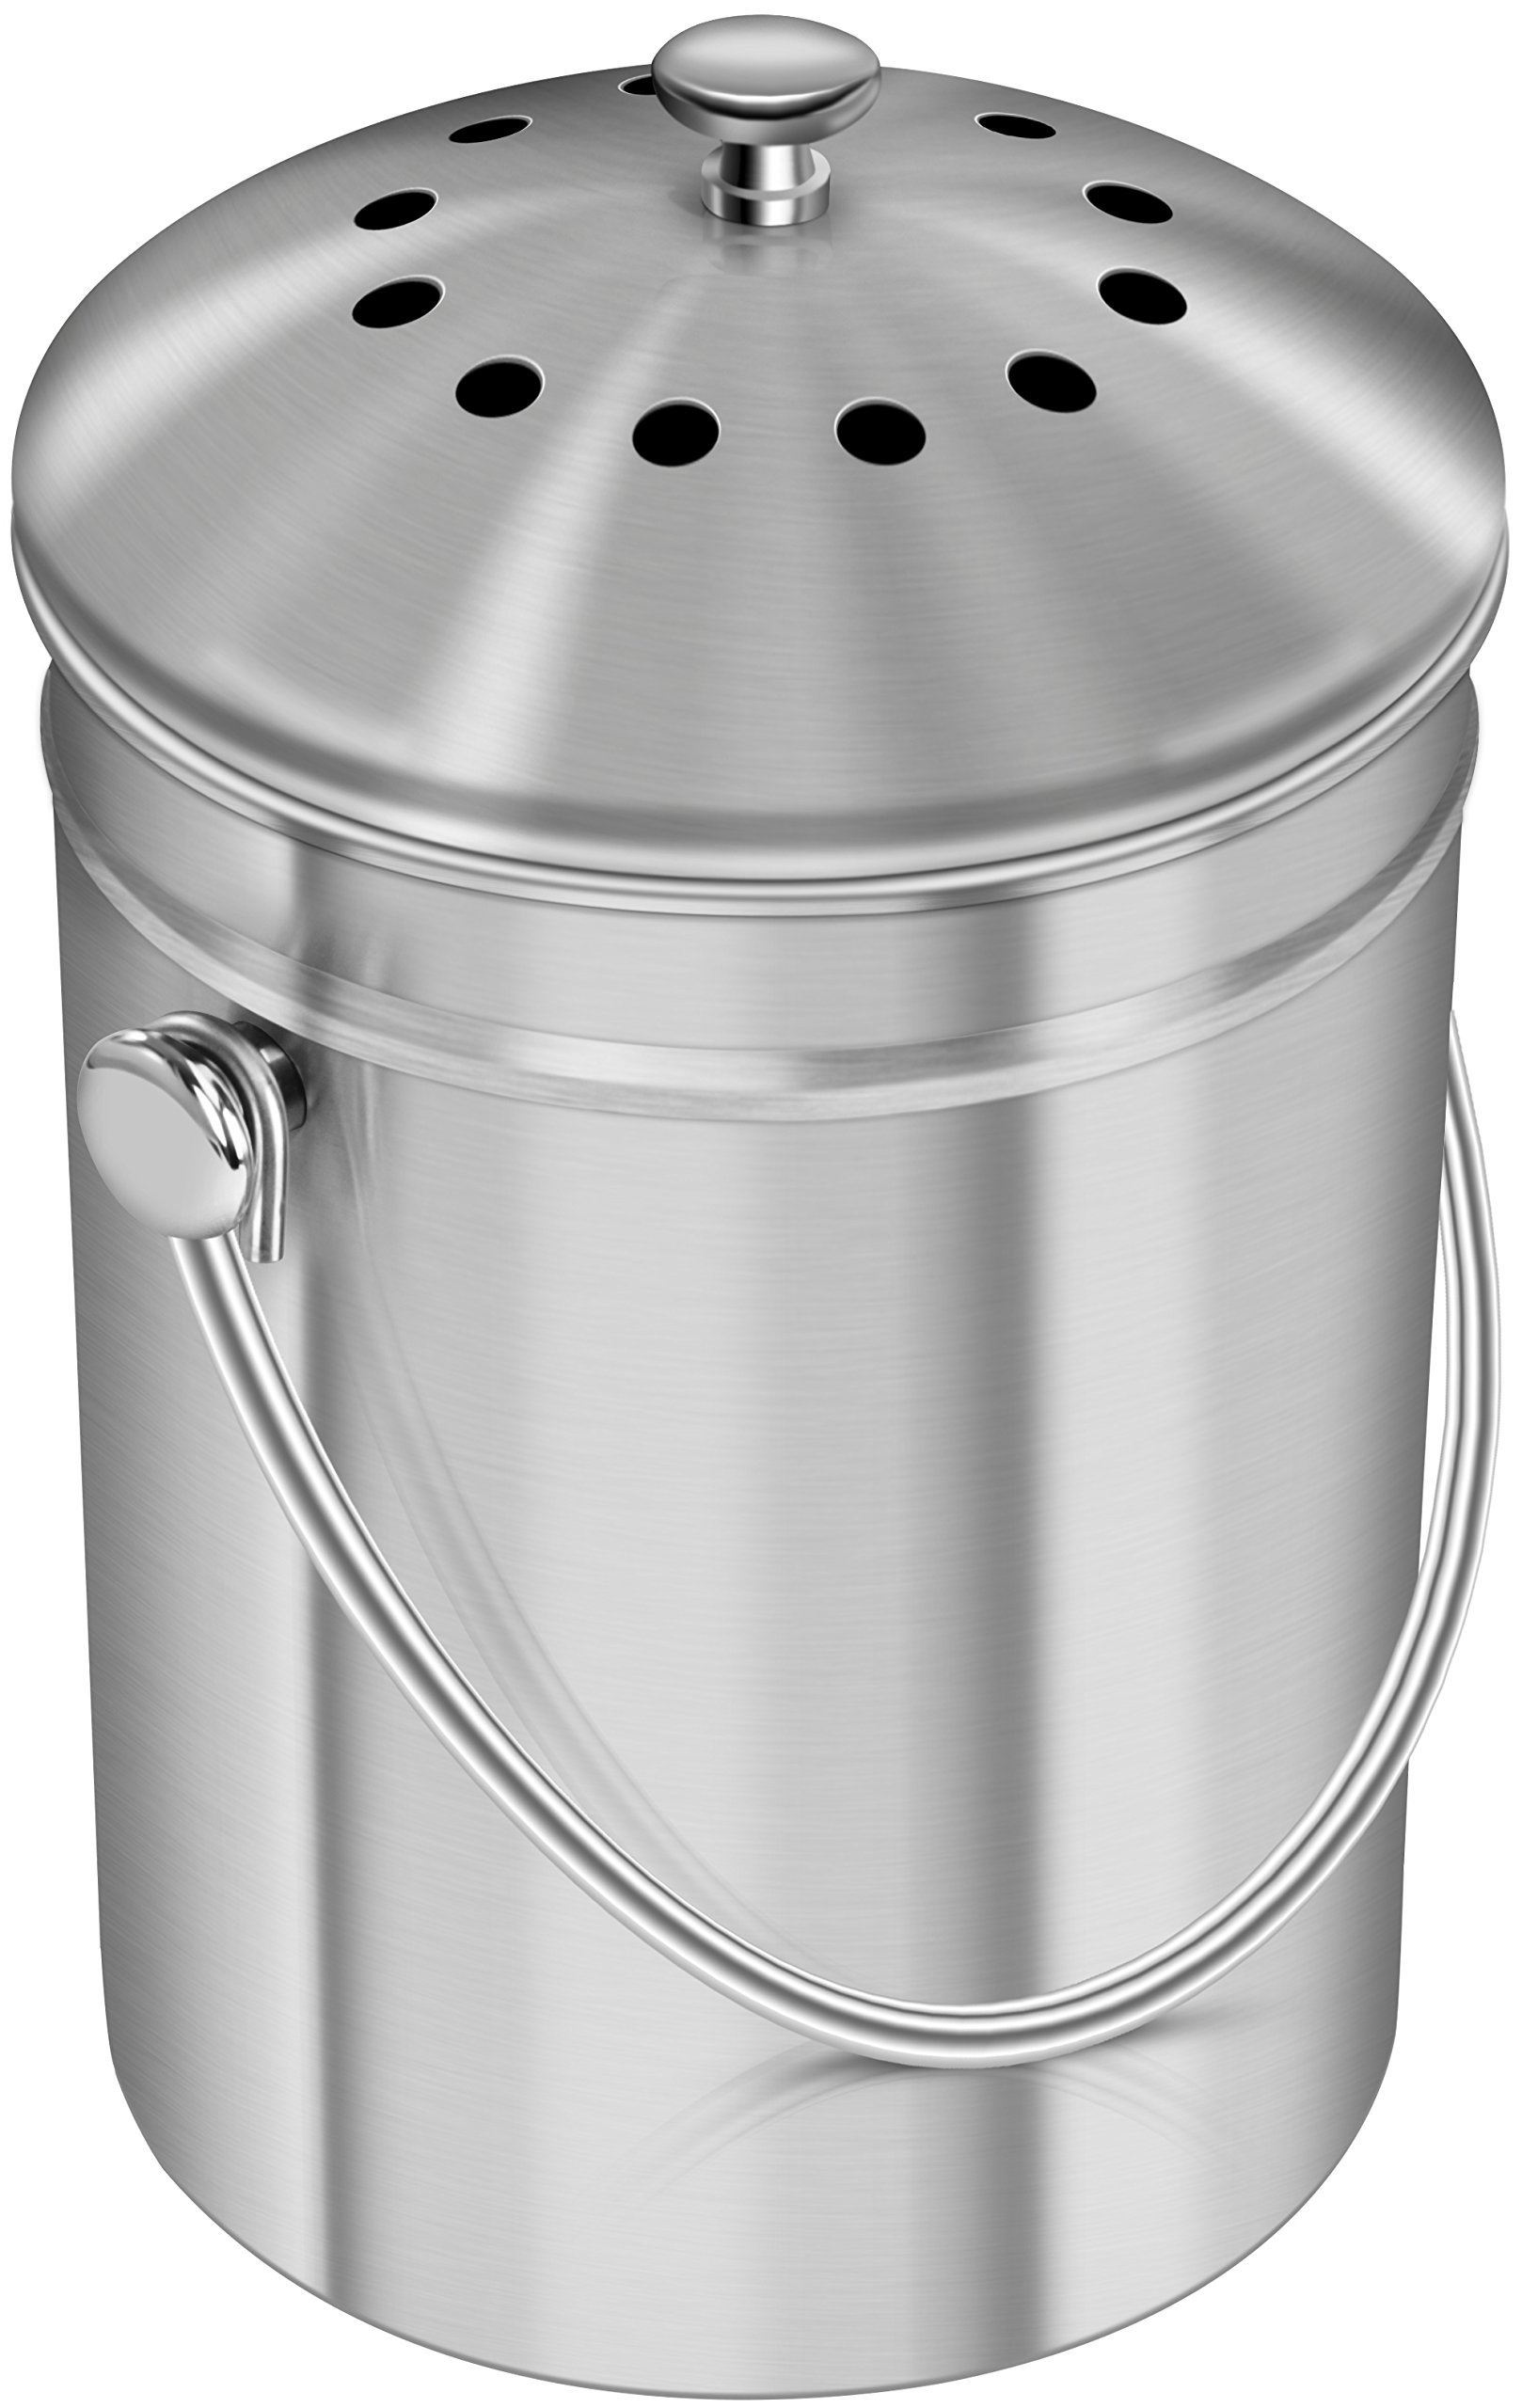 Utopia Kitchen Stainless Steel Compost Bin for Kitchen Countertop - 1.3 Gallon Compost Bucket Kitchen Pail Compost with Lid - Includes 1 Spare Charcoal ...